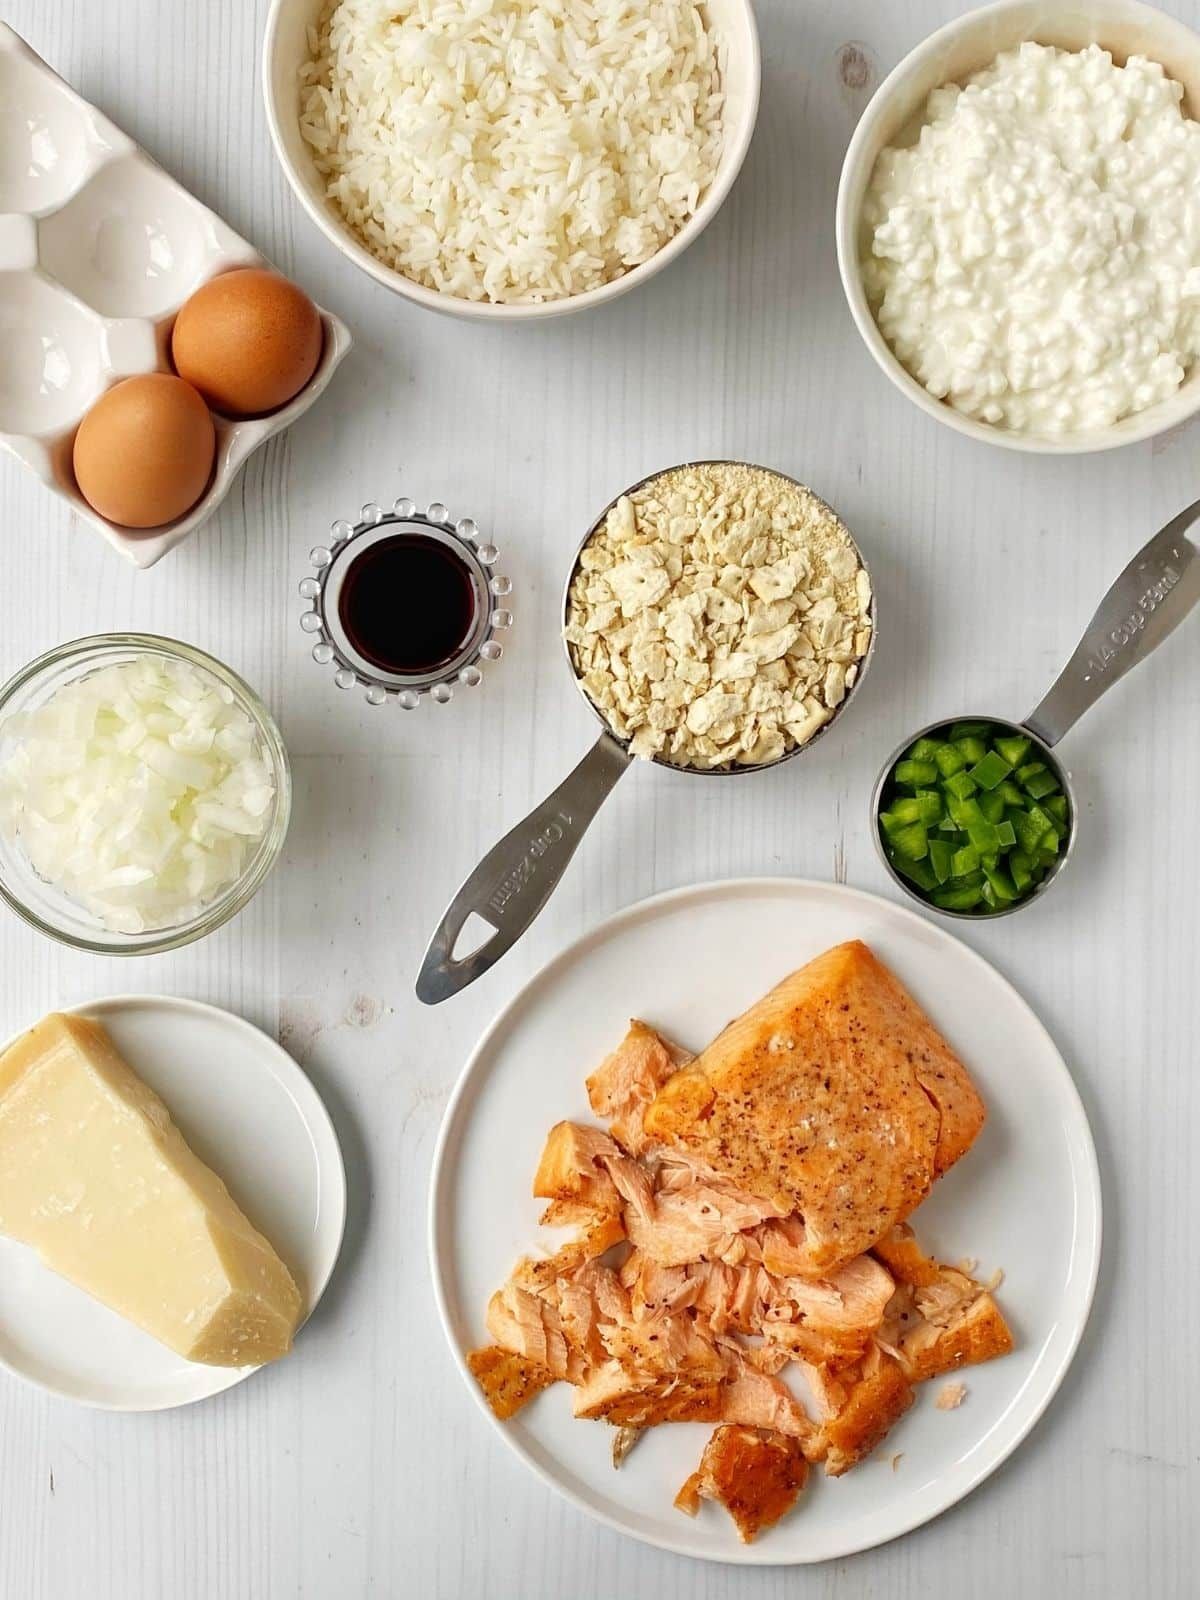 array of salmon loaf ingredients - salmon, rice, cottage cheese, onion, green peppers, soy sauce, eggs, cracker crumbs and cheese